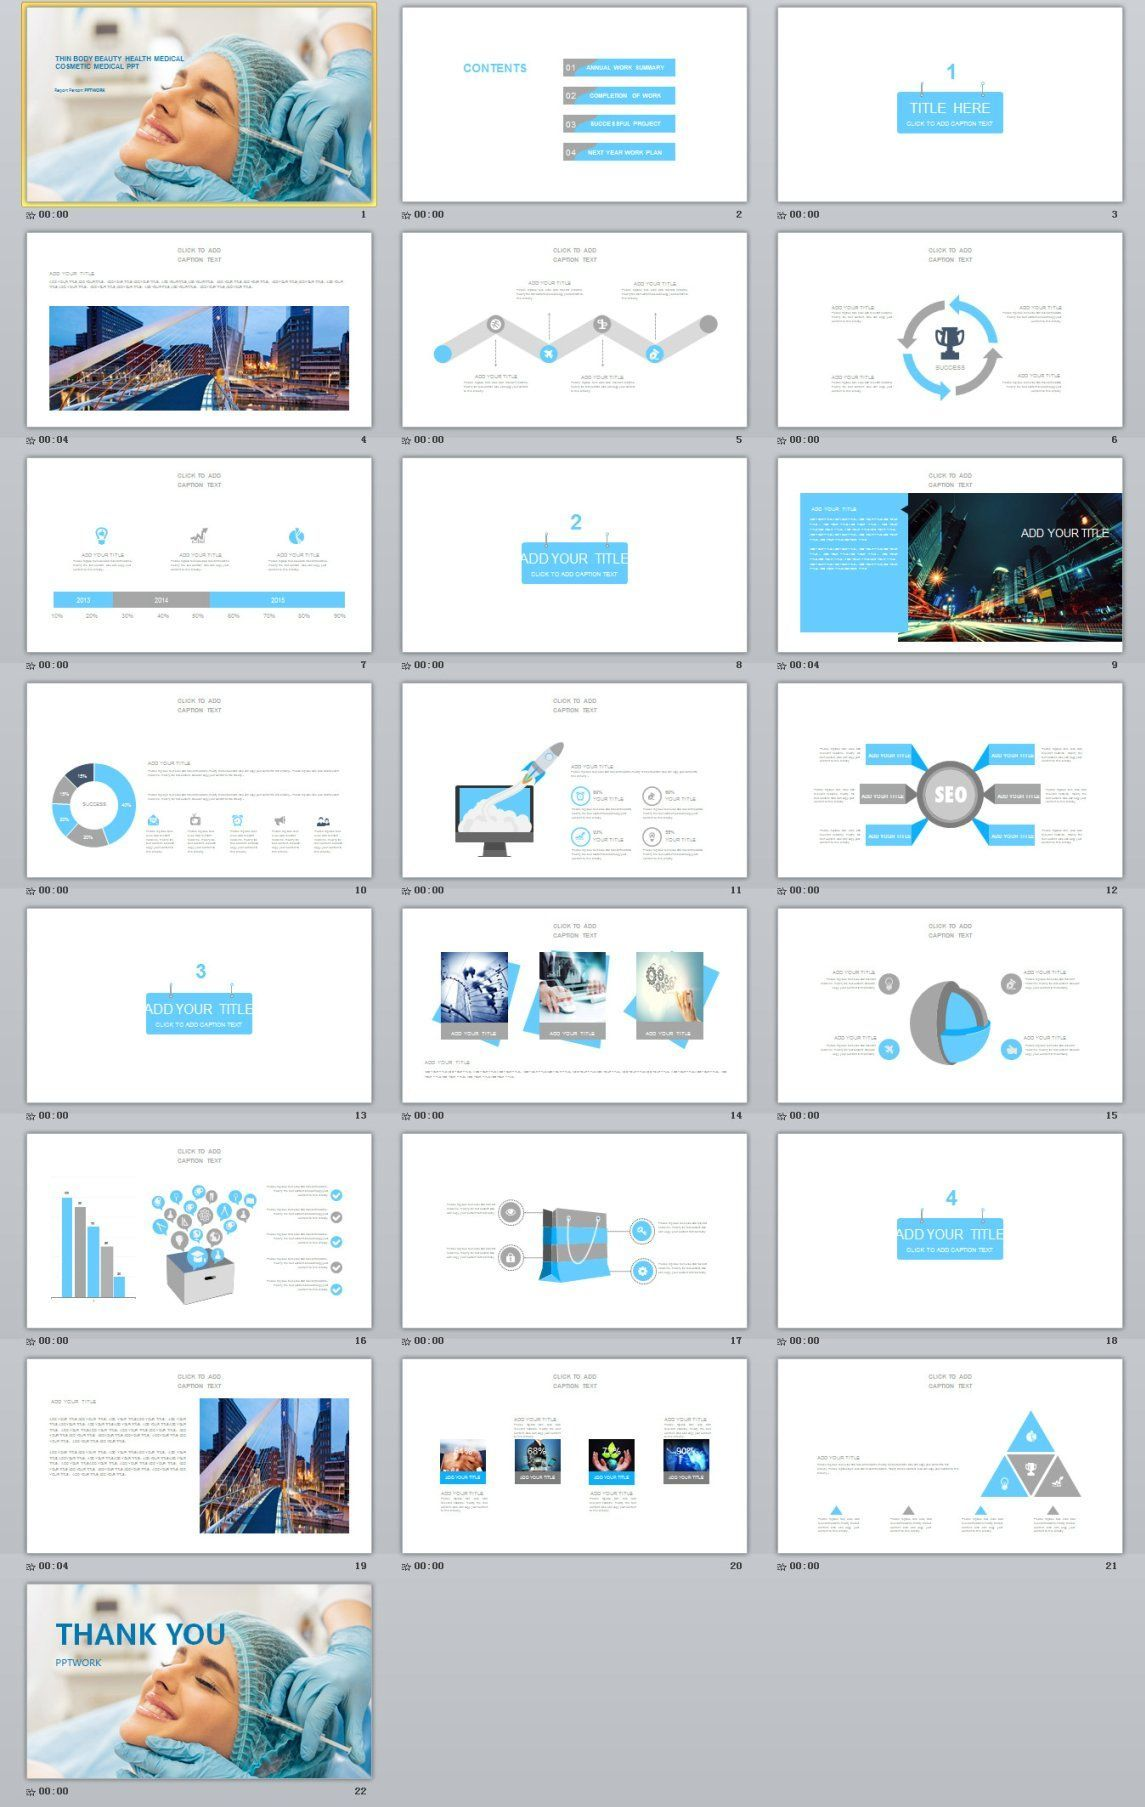 Blue Medical industry analysis PowerPoint template - Pcslide